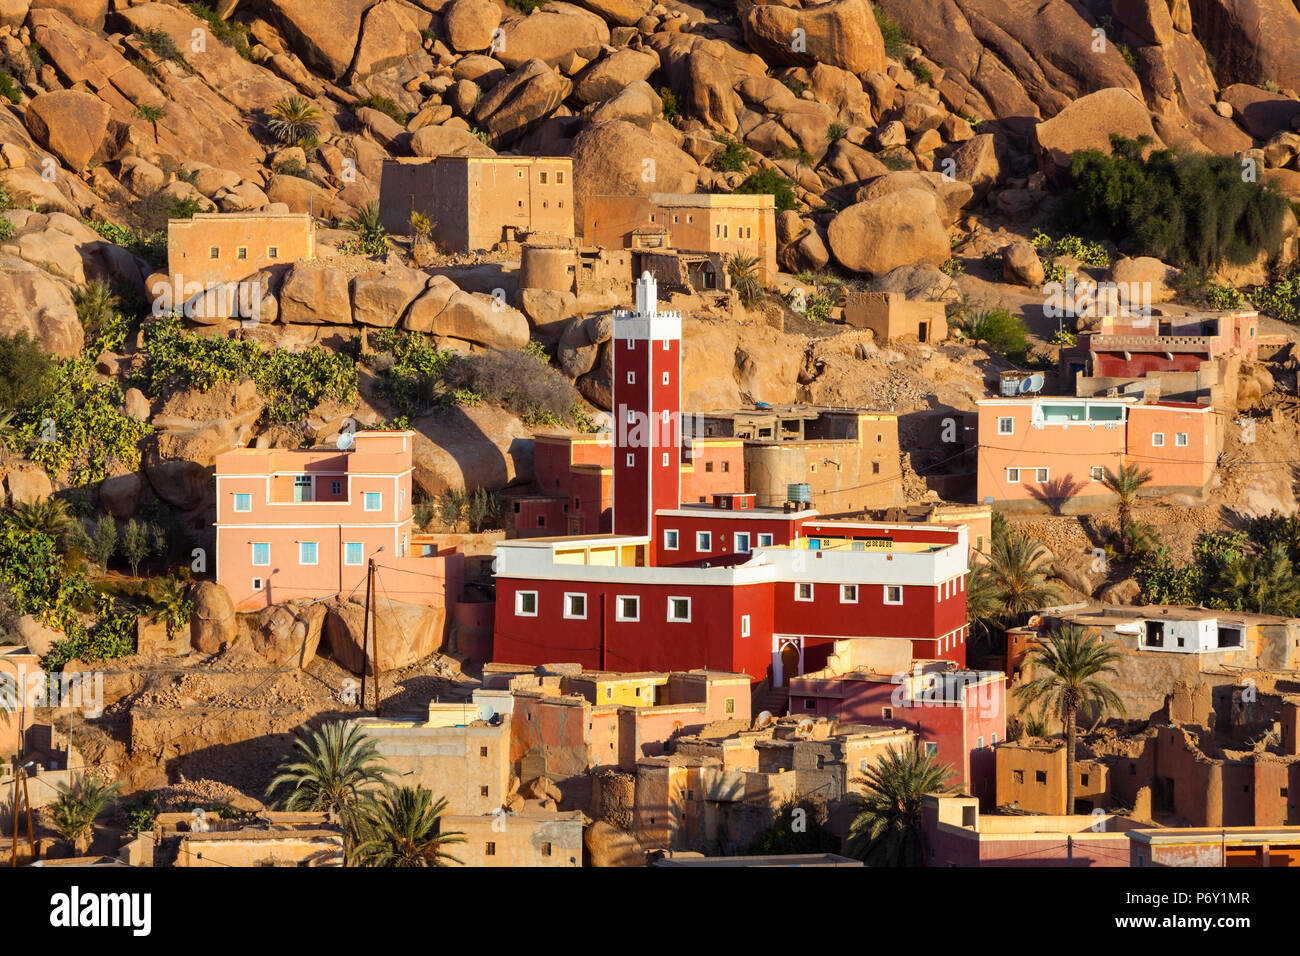 Elevated view over the Red Mosque of Adai, Tafraoute, Anti Atlas, Morocco - Stock Image